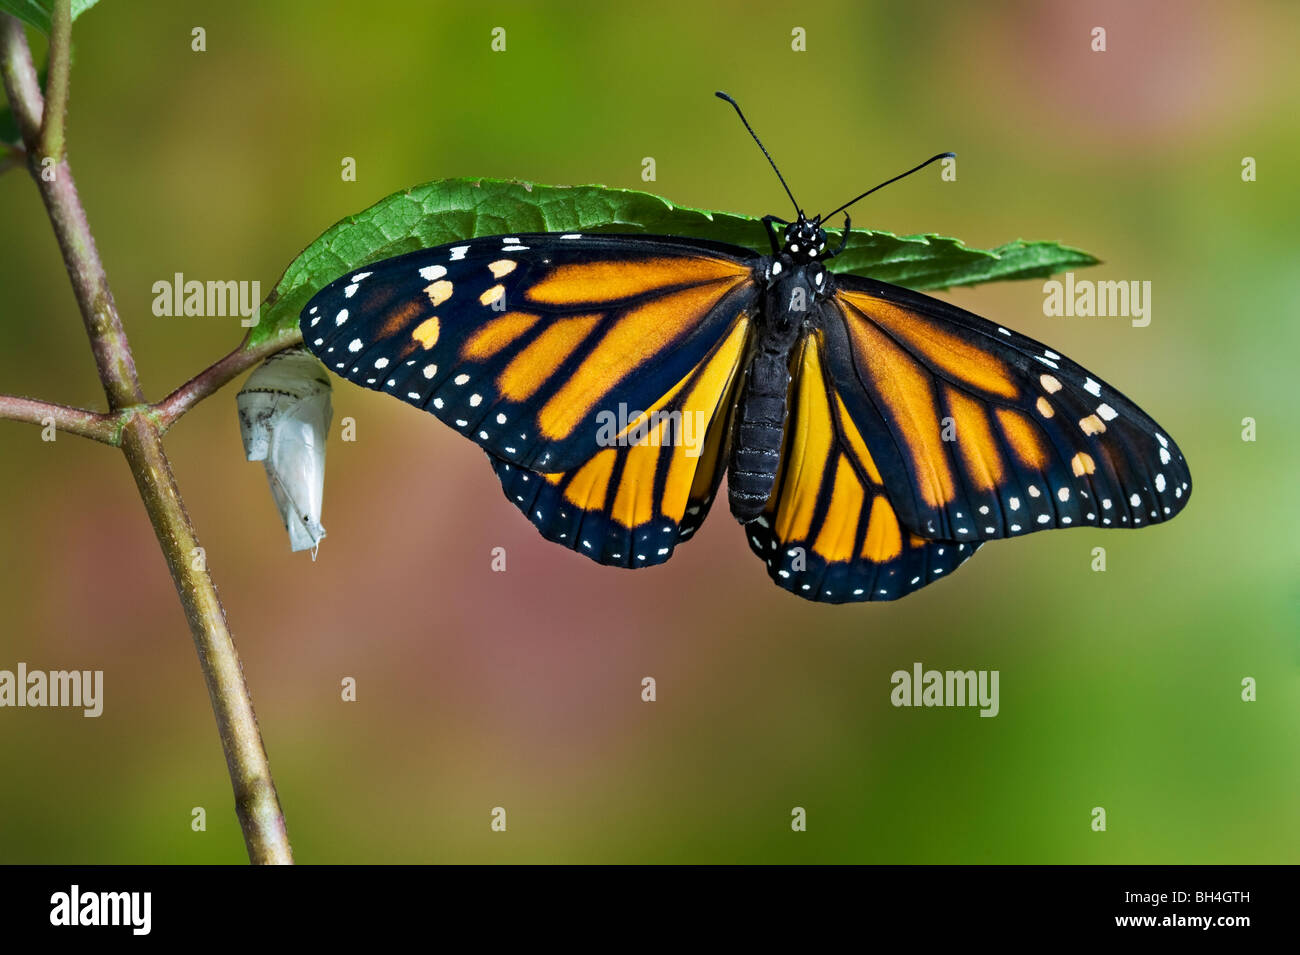 Monarch butterfly adult emerged from cocoon, on leaf beside empty chrysalis drying wings, Nova Scotia. Series of - Stock Image